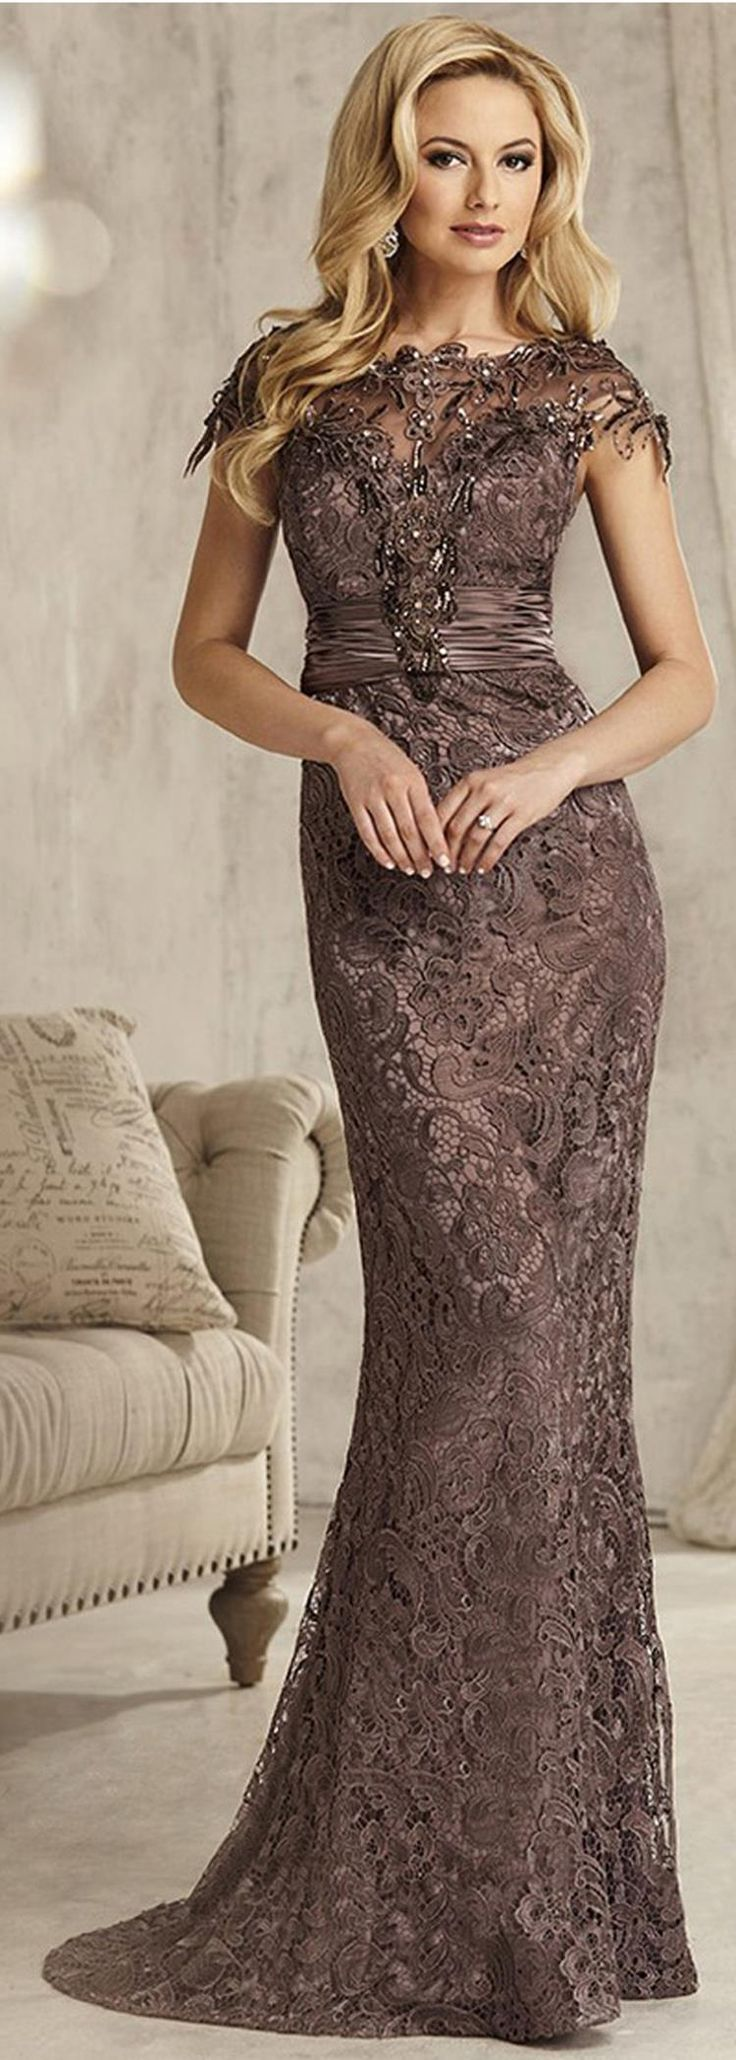 Mother Of The Groom Dresses For Fall Wedding 6 - Fashion ...